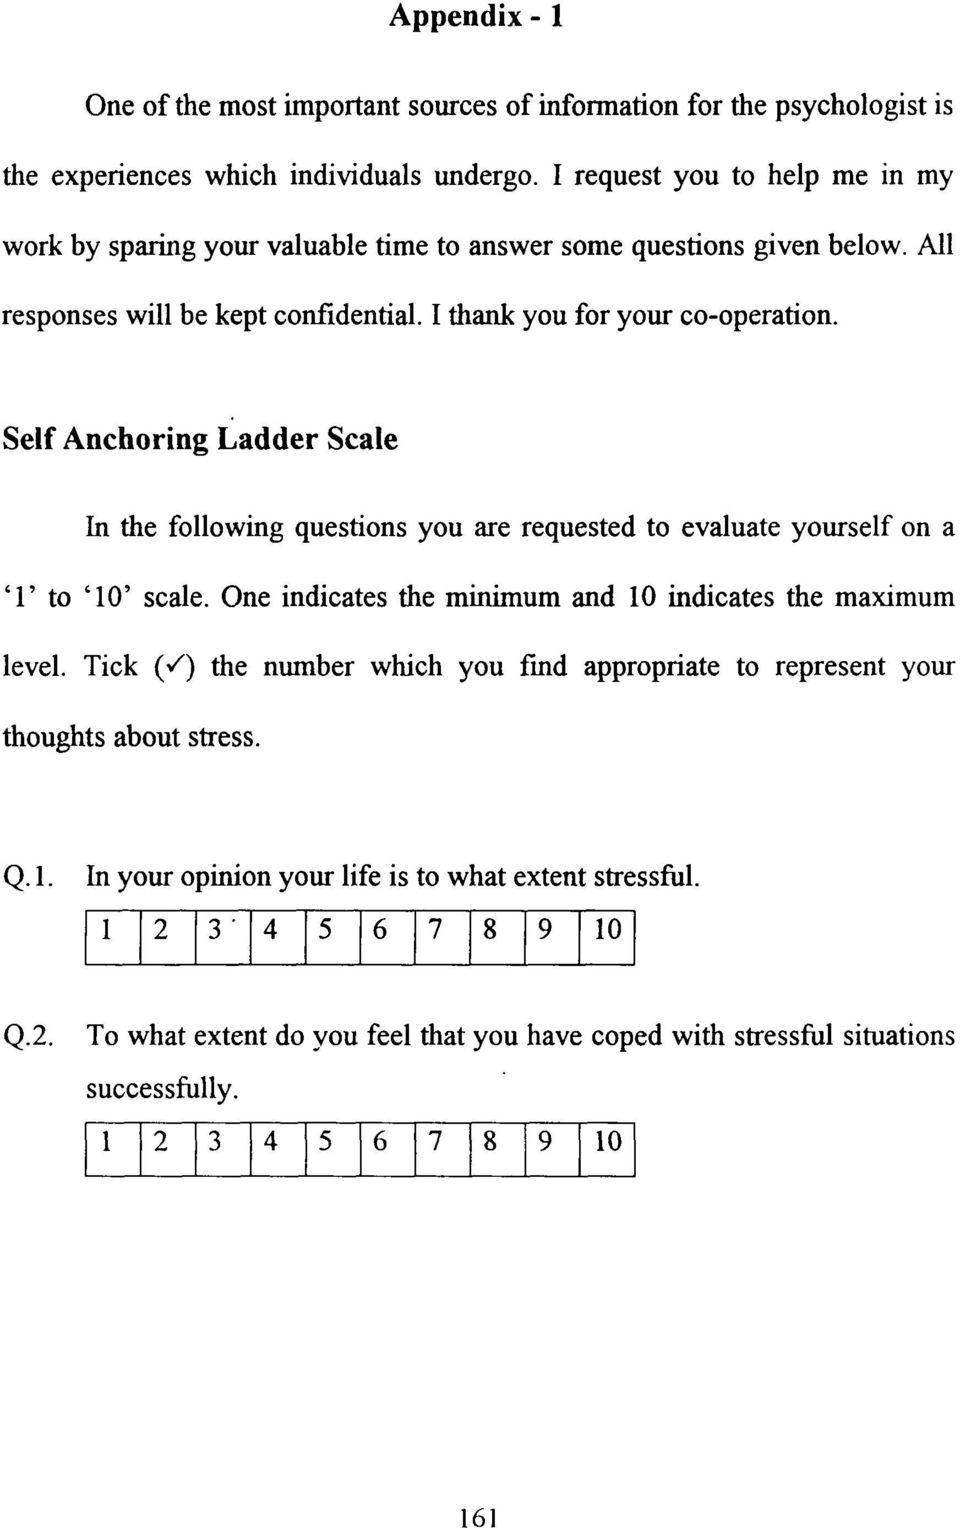 Self Anchoring Ladder Scale In the following questions you are requested to evaluate yourself on a T to '1' scale. One indicates the minimum and 1 indicates the maximum level.